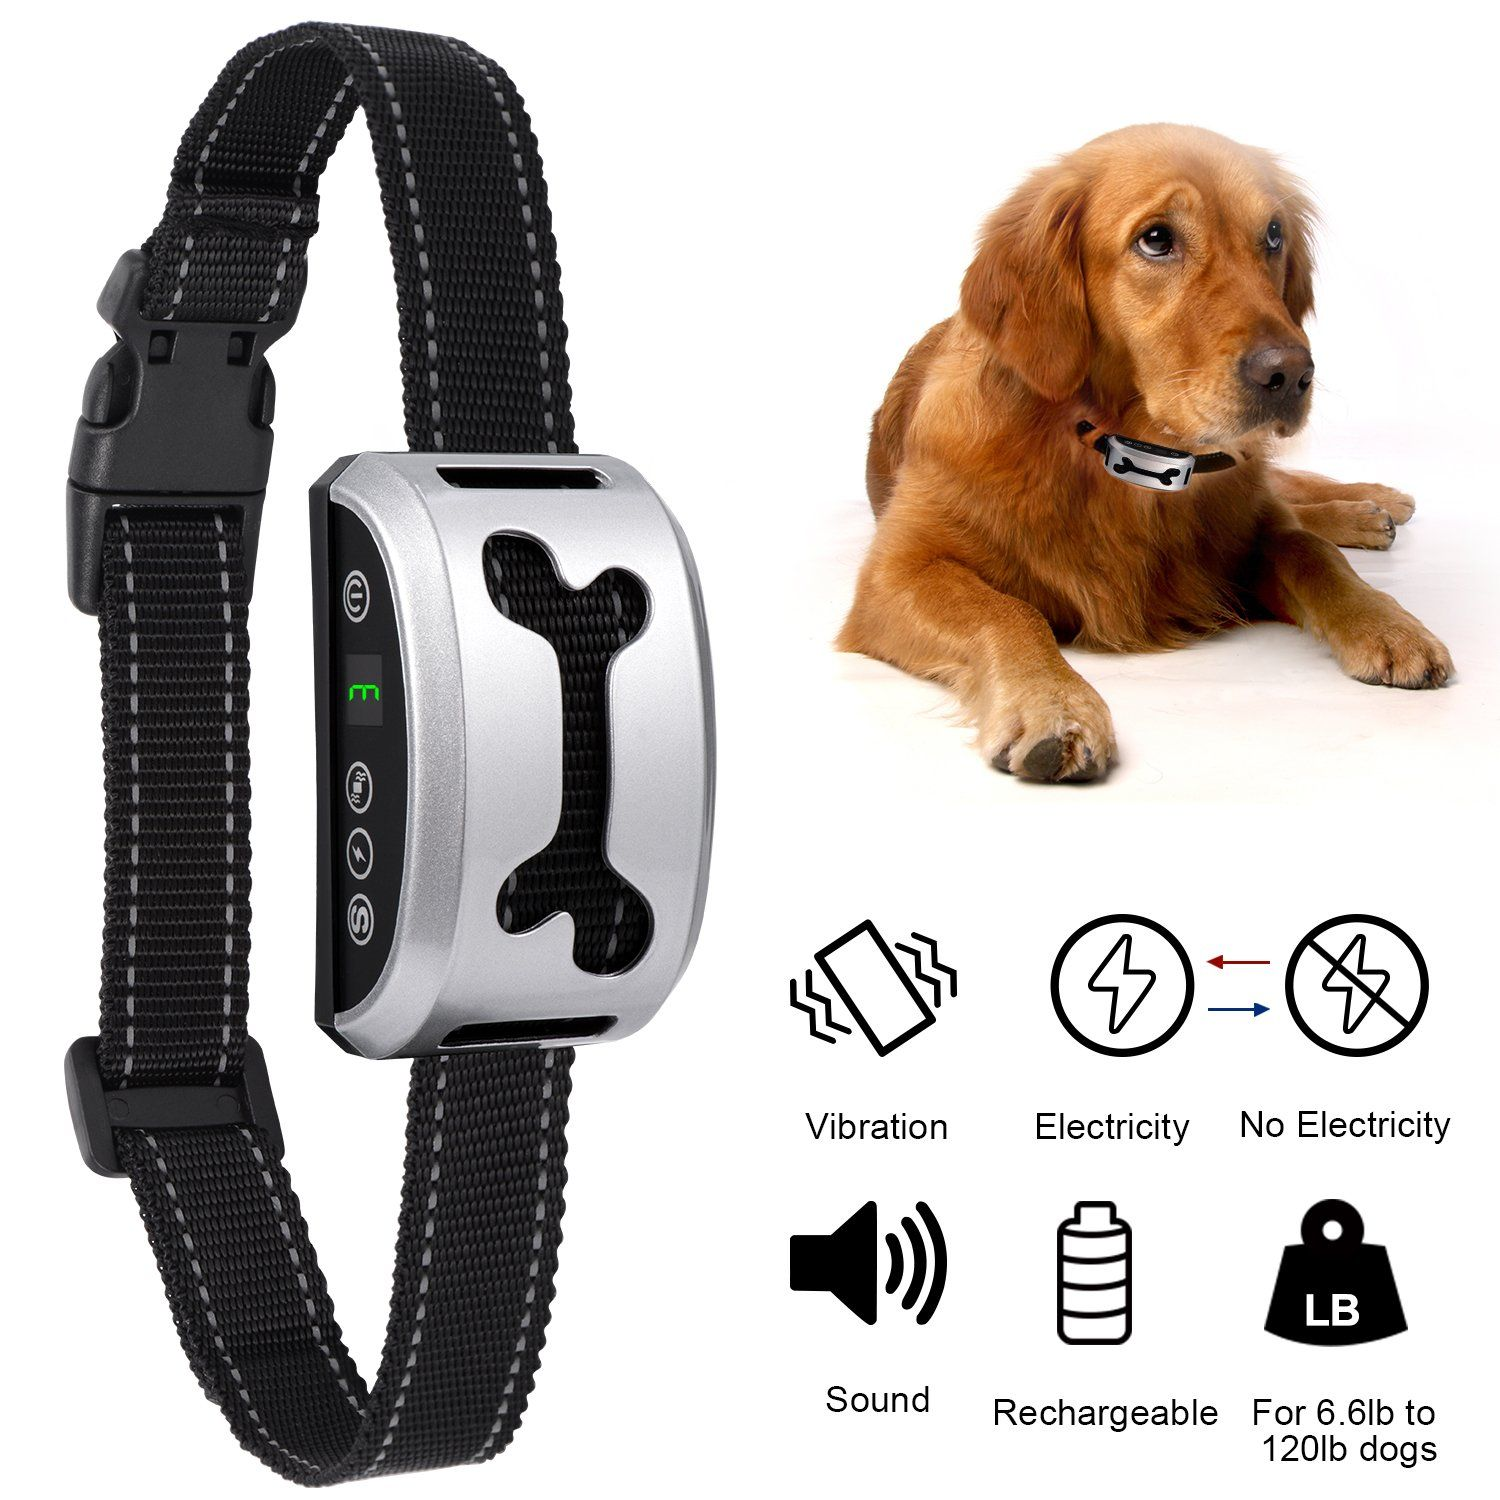 Dog Bark Collar Adoric Life Adjustable Rechargeable Humane